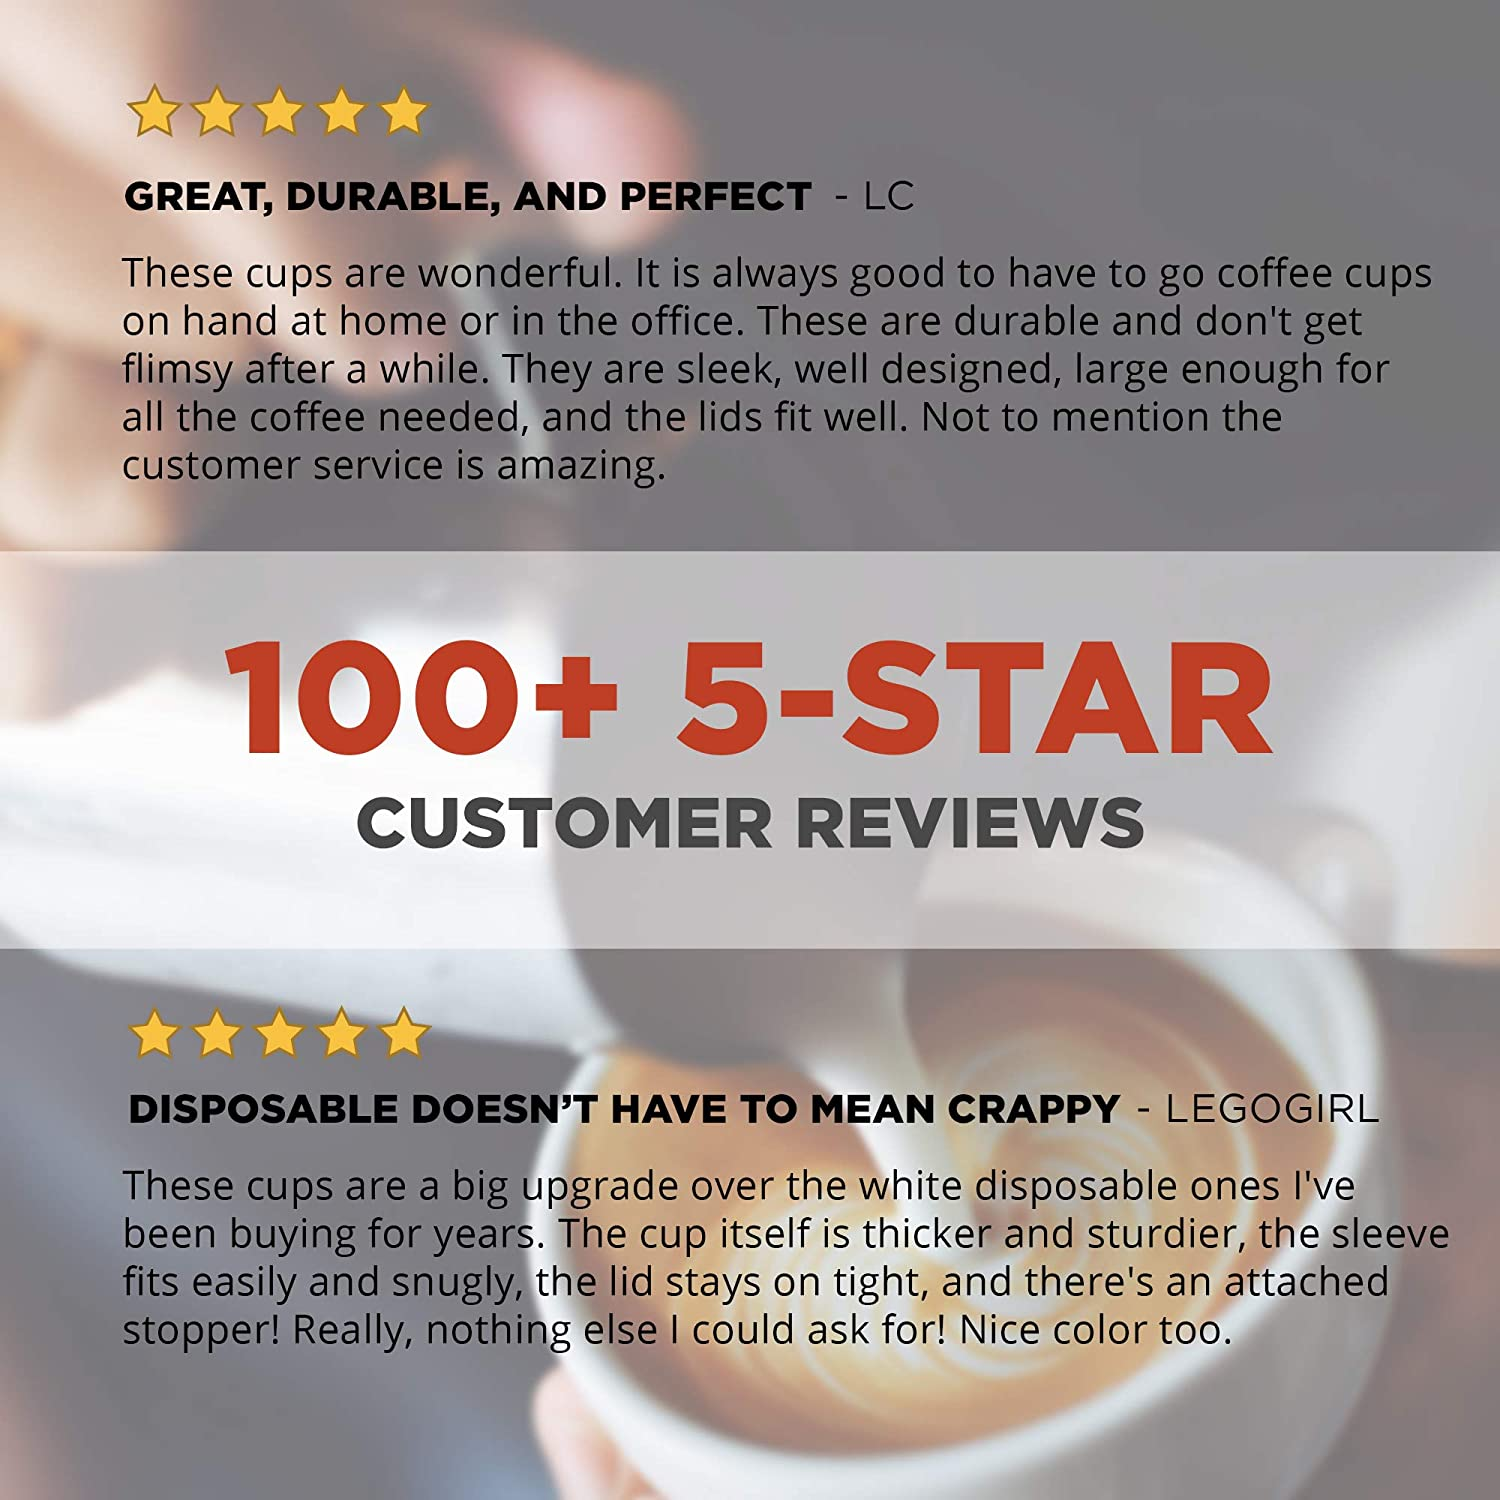 16 oz To Go Coffee Cups 90 Set Disposable Coffee Cups With Lids With Sleeves and Lids Prevent Leaks Insulated to Protect Fingers from Heat! Cold Drinks Paper Togo Hot Cup Holds Shape With Hot